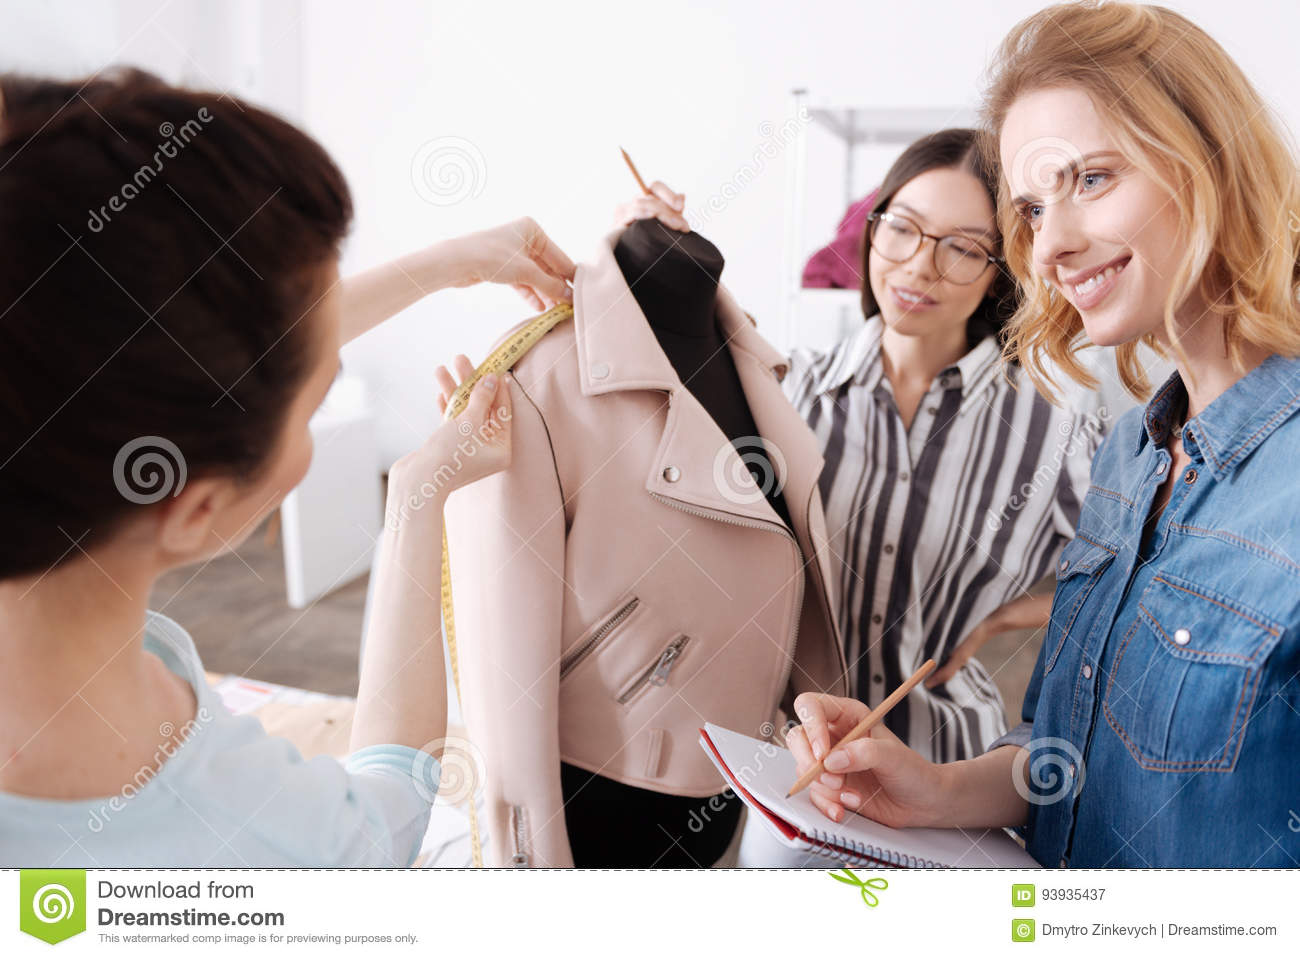 Young Tailors Working With A Pink Jacket Stock Photo - Image: 93935437